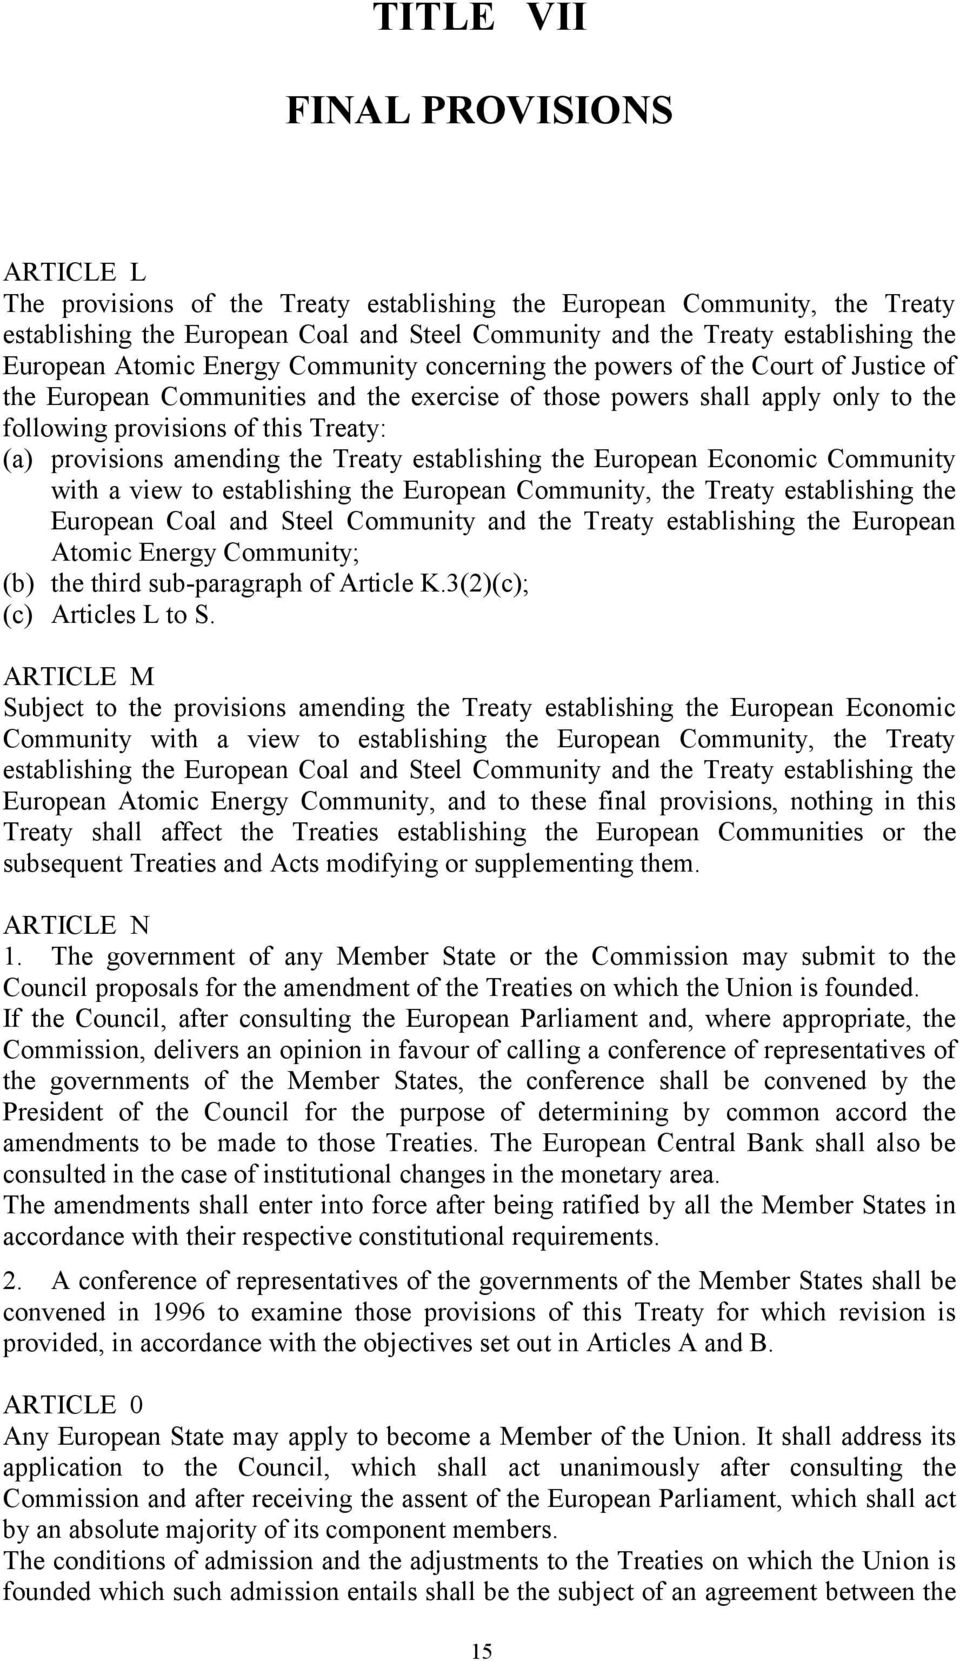 Treaty: (a) provisions amending the Treaty establishing the European Economic Community with a view to establishing the European Community, the Treaty establishing the European Coal and Steel